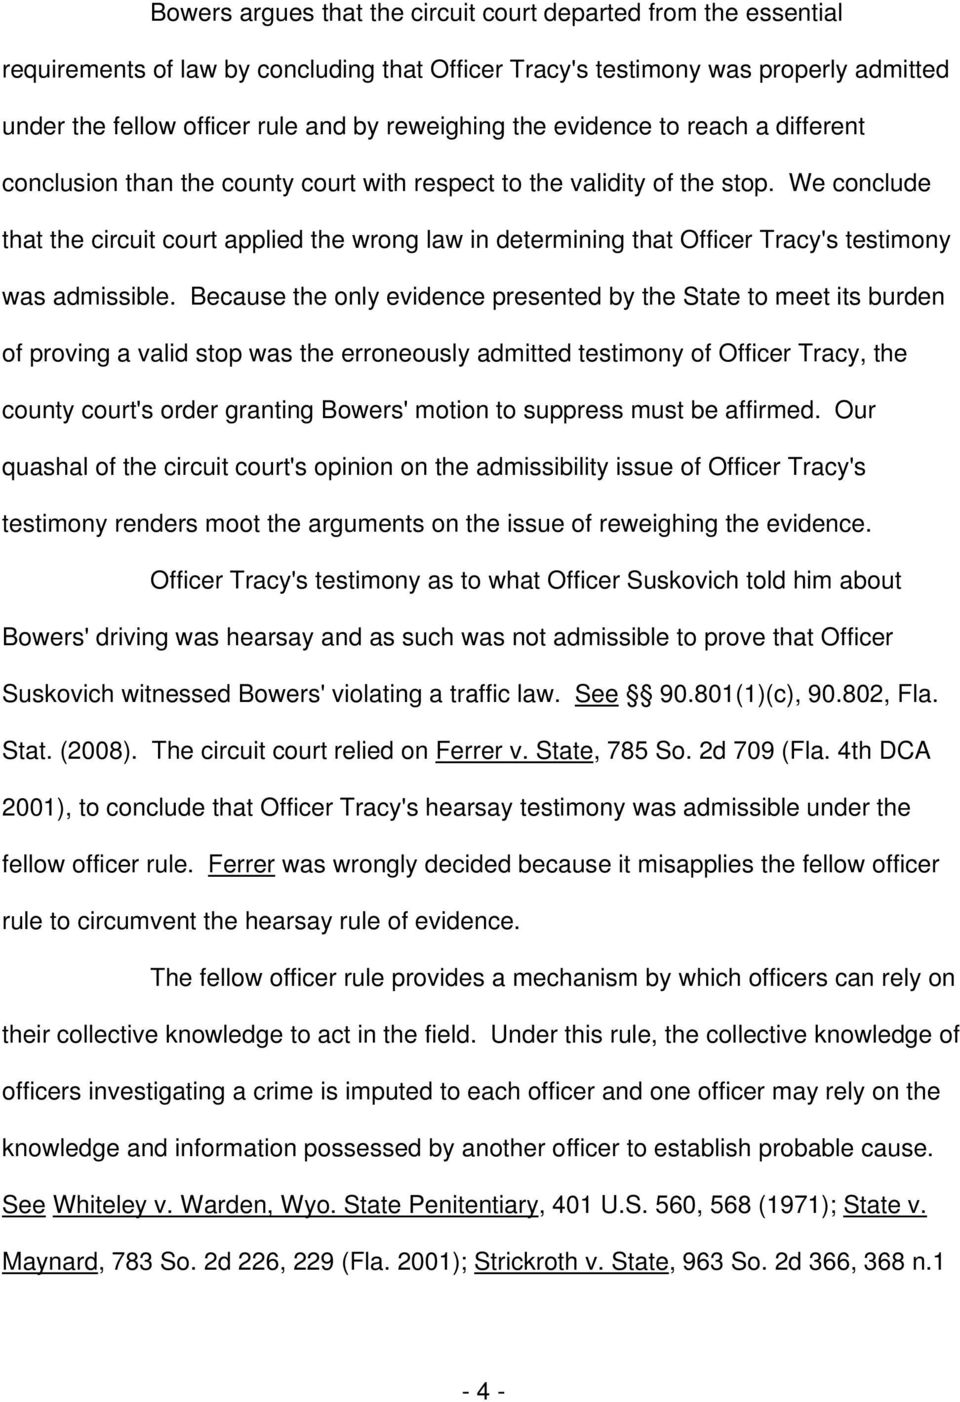 We conclude that the circuit court applied the wrong law in determining that Officer Tracy's testimony was admissible.